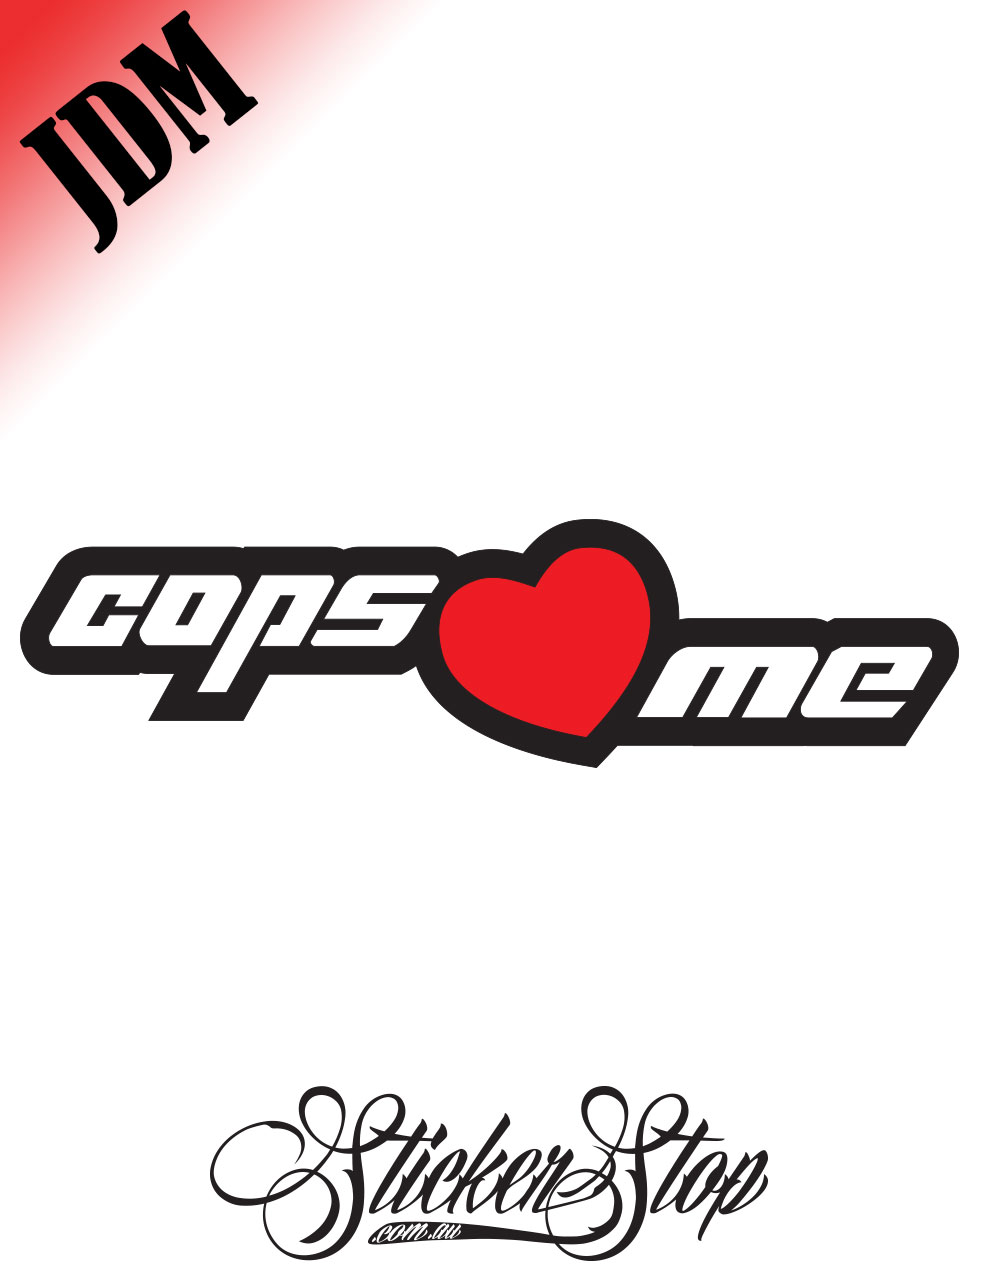 Cops Heart Me JDM Sticker Decal